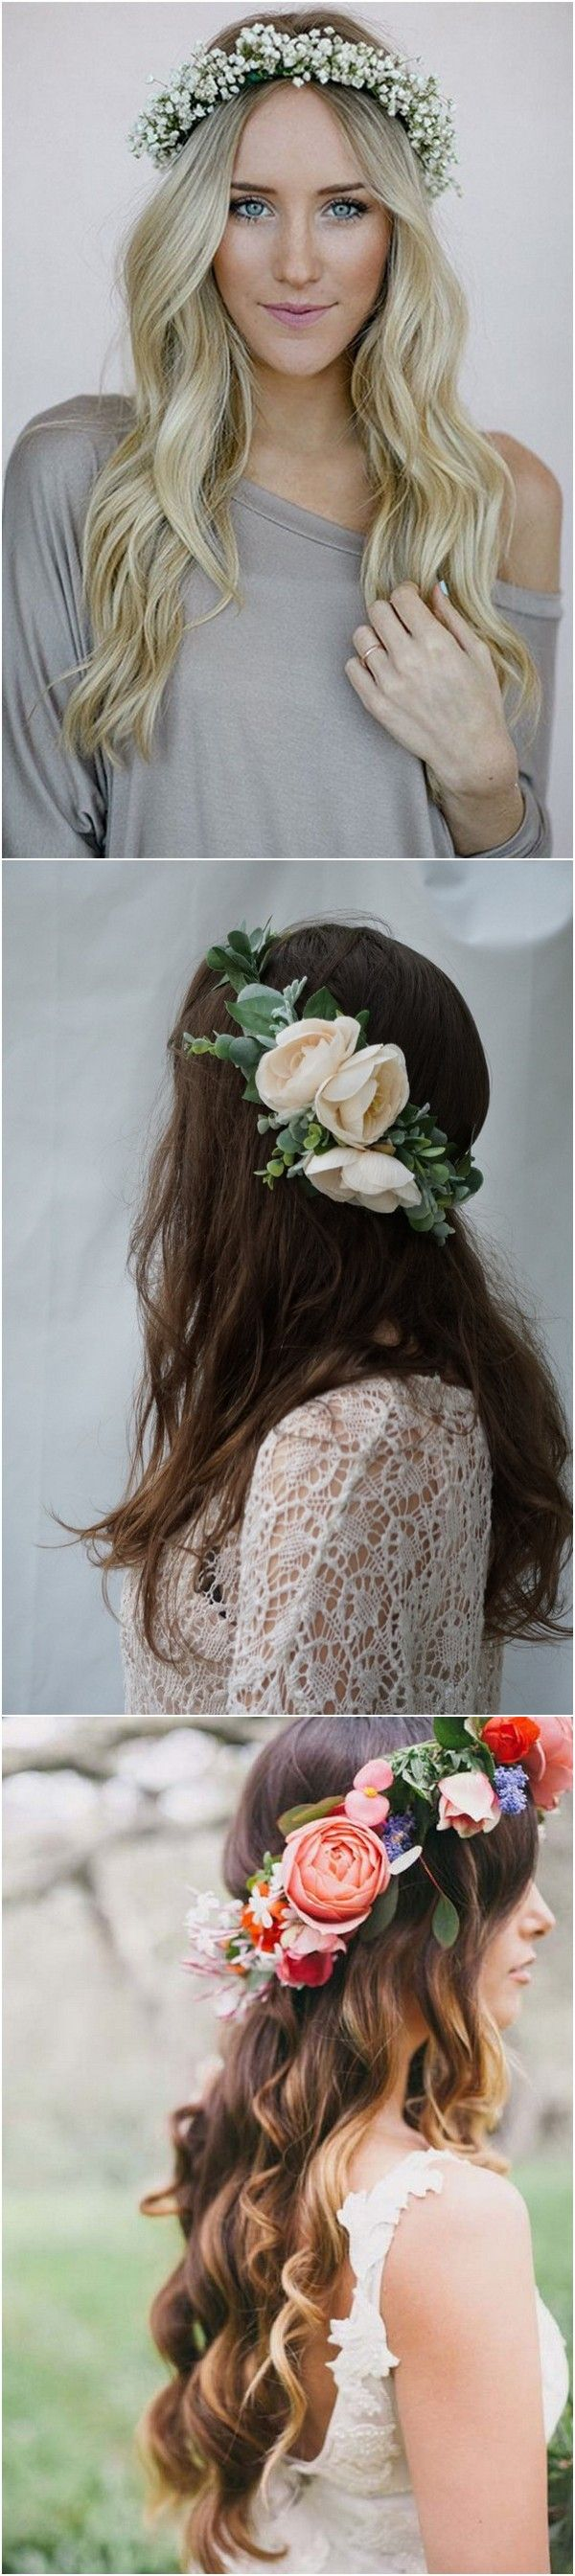 18 gorgeous wedding hairstyles with flower crown page 3 of 3 18 gorgeous wedding hairstyles with flower crown page 3 of 3 weddingideas flower crowns and wedding izmirmasajfo